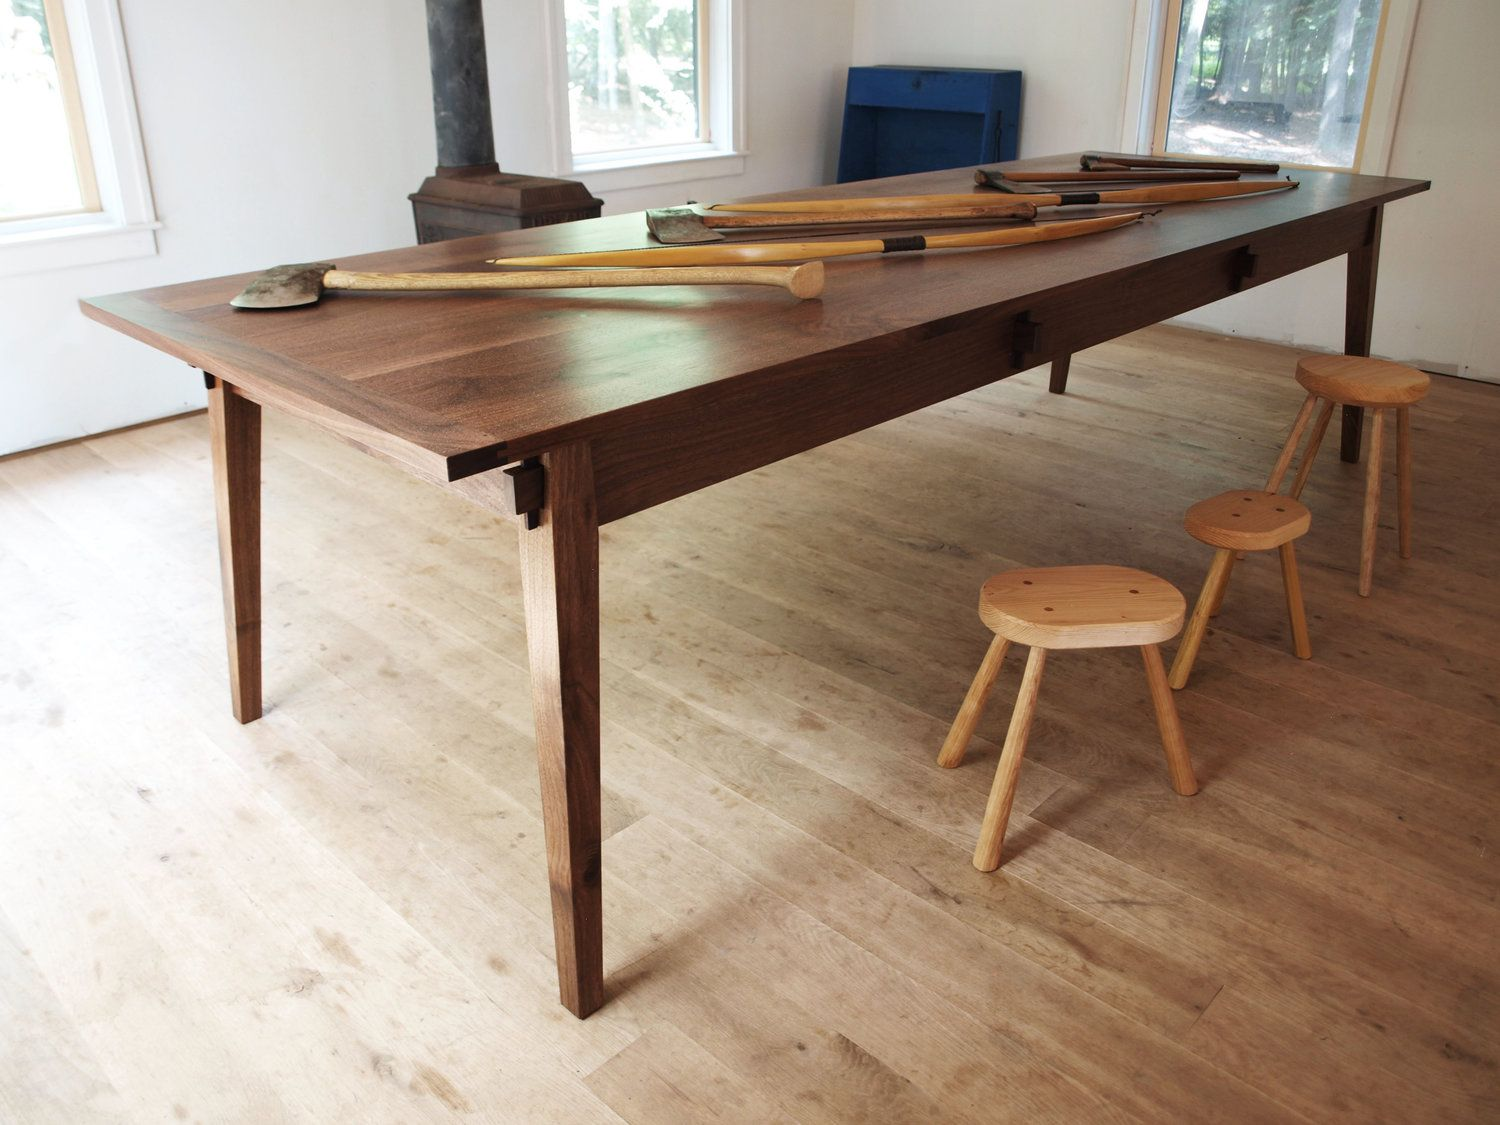 Span Dining Table Brian Persico With Images Dining Table